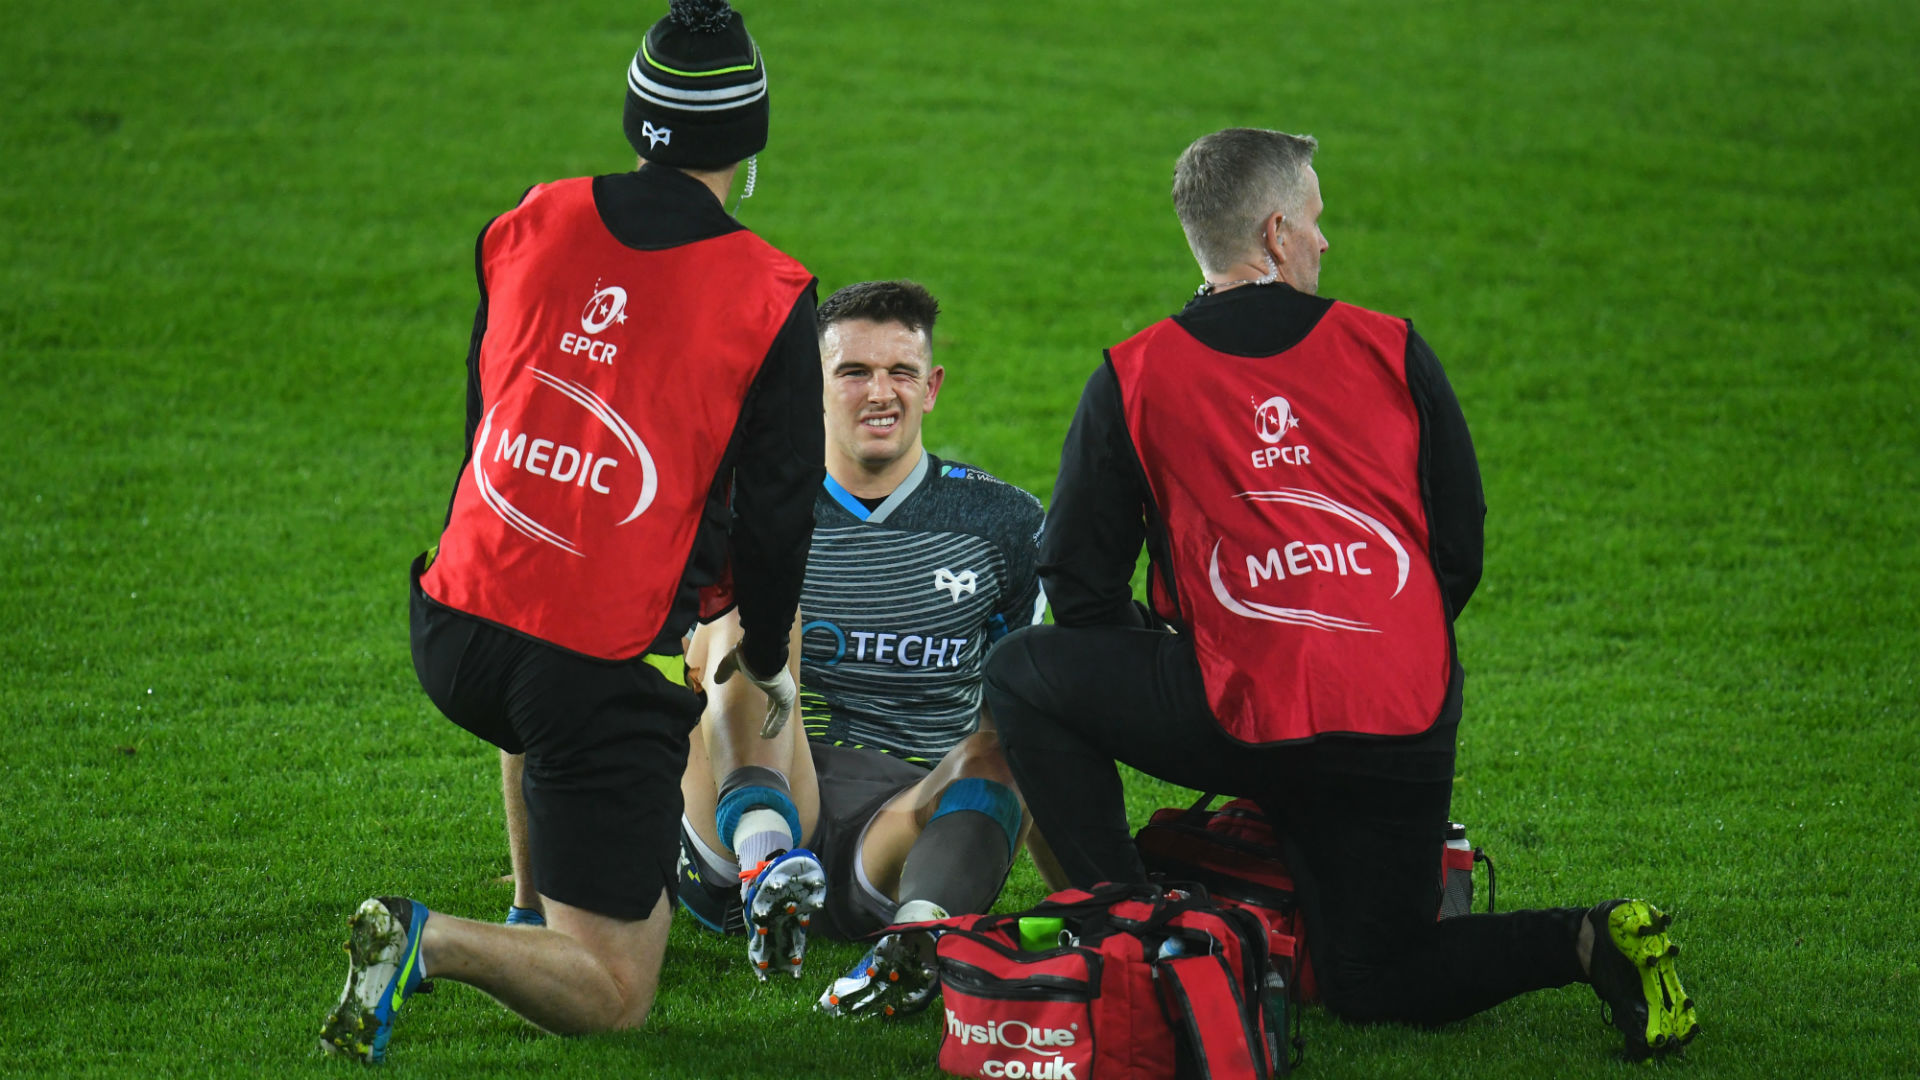 Watkin set to miss start of Six Nations, Anscombe has second knee operation